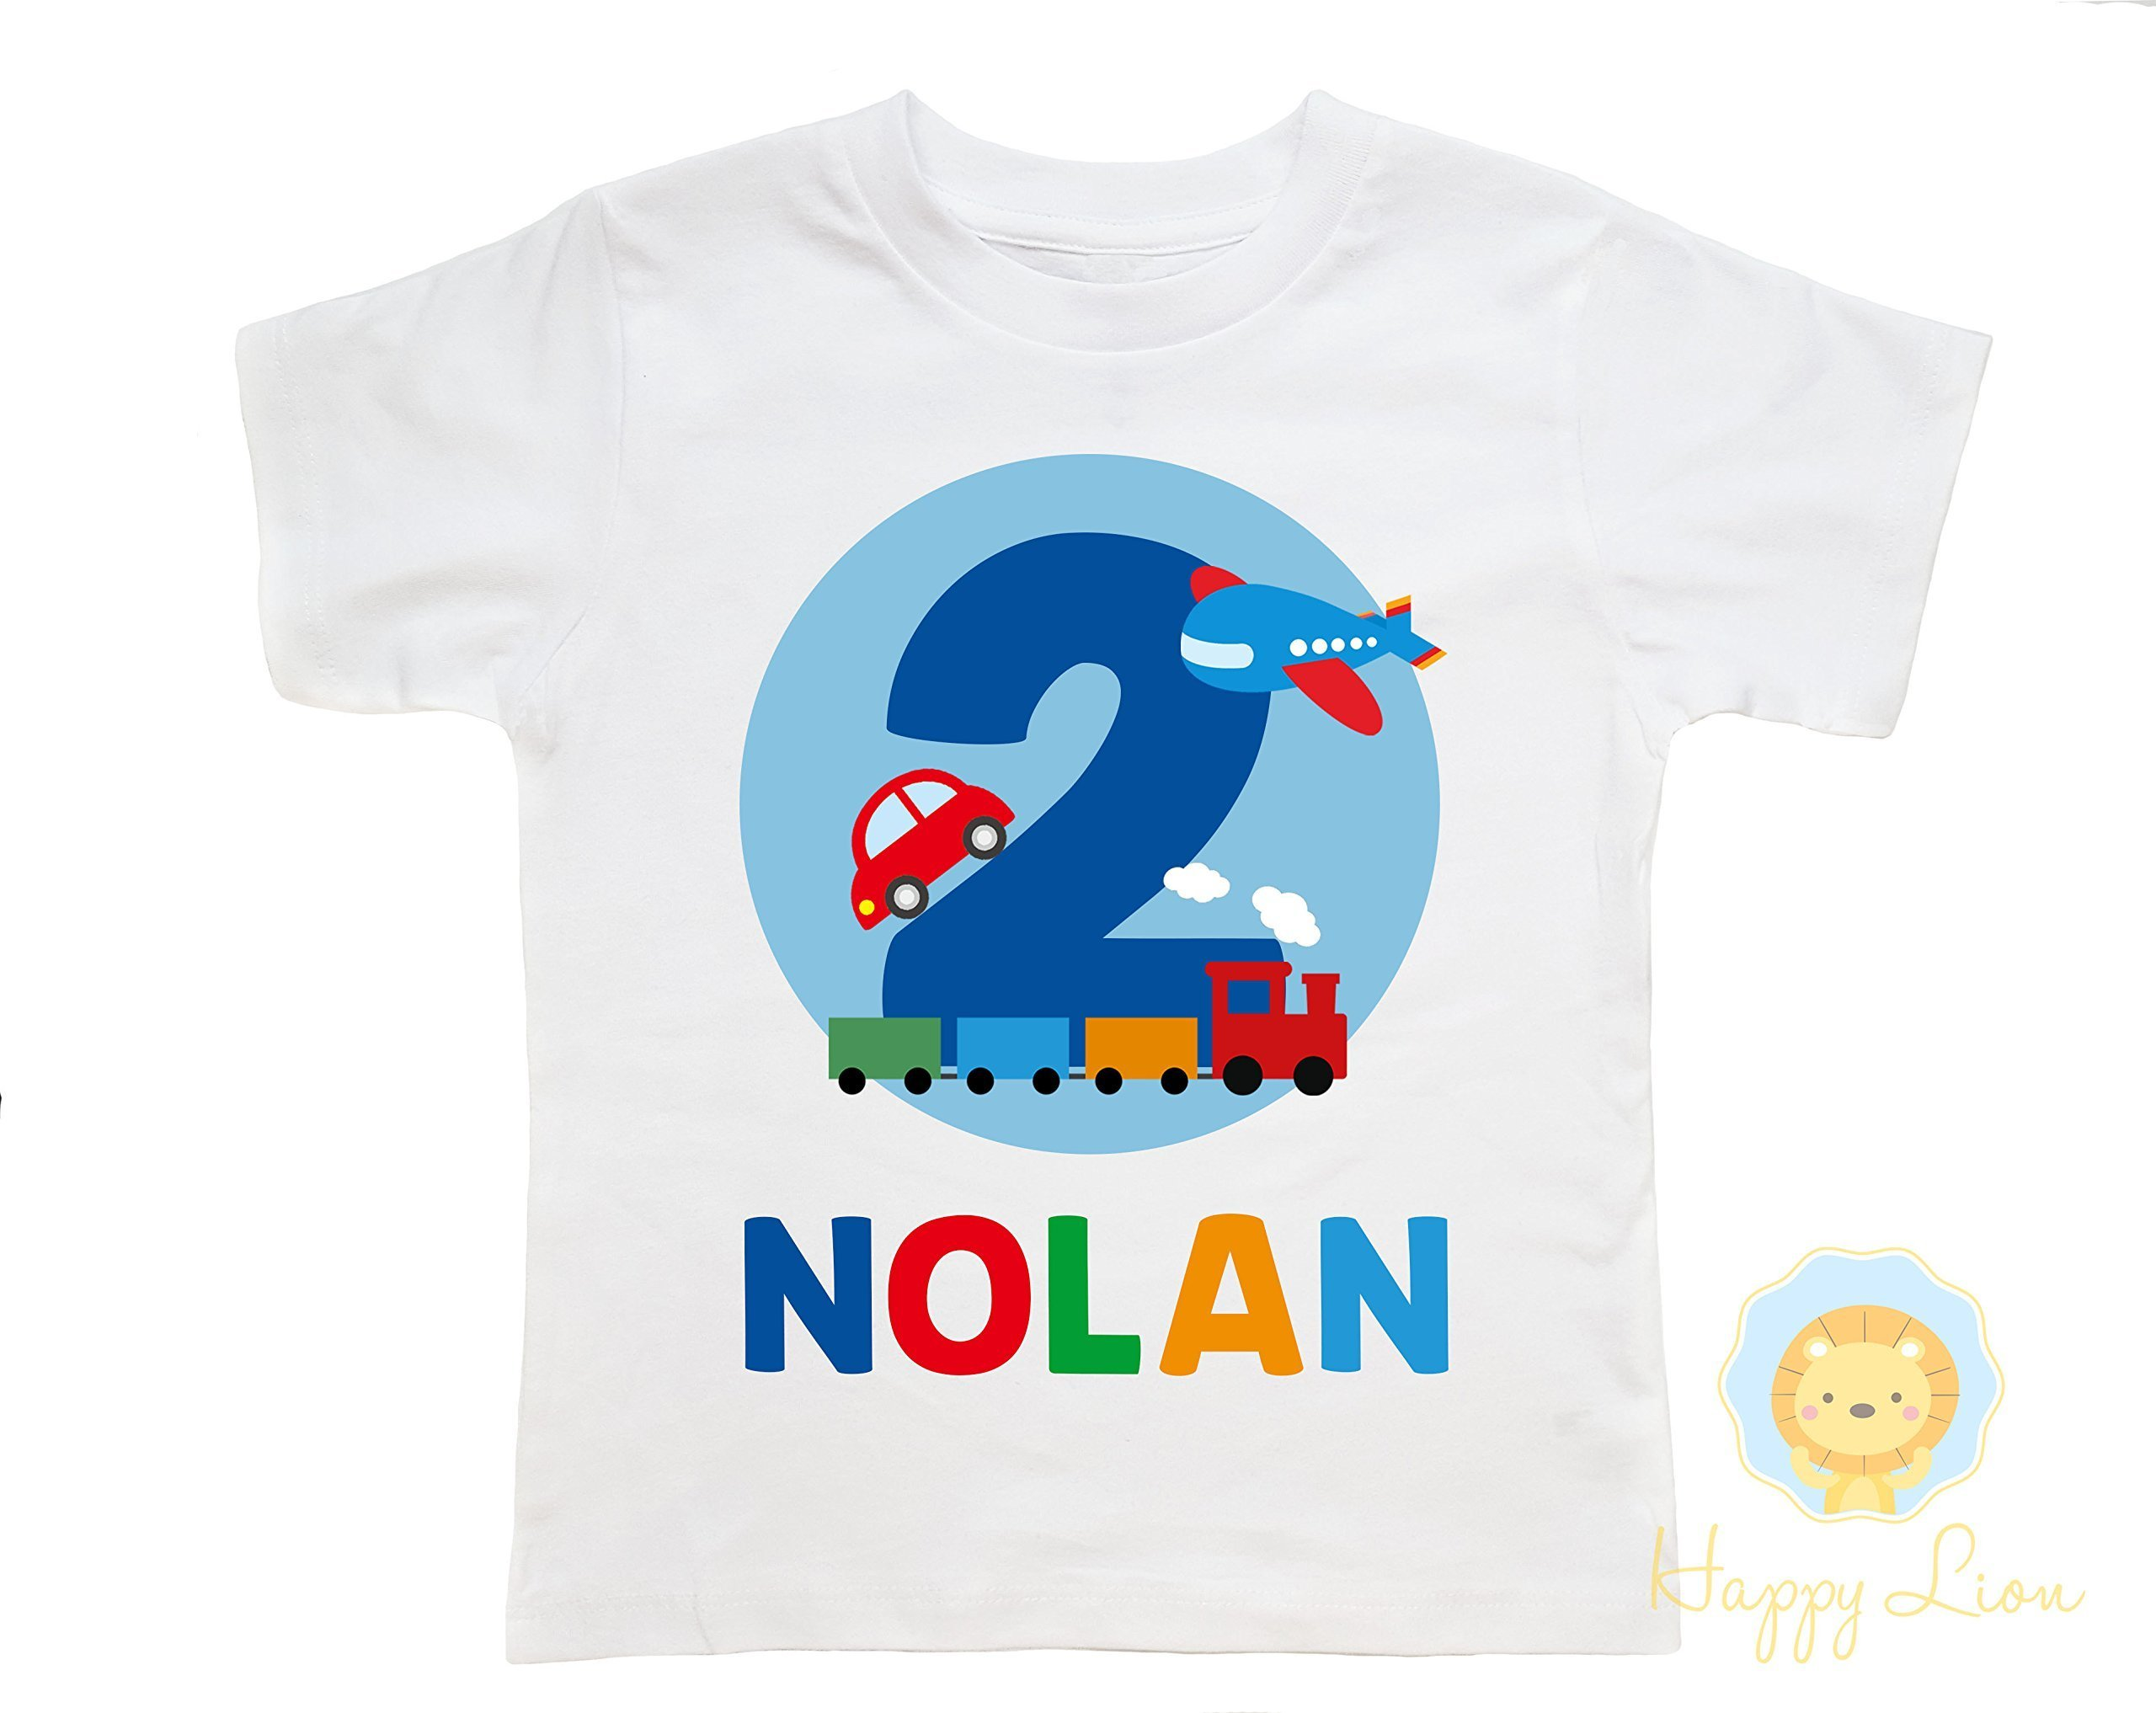 Happy Lion Clothing - Transportation Things That Go Birthday Shirt for Toddler Boys, Cars and trucks birthday shirt, airplanes, trains, cars